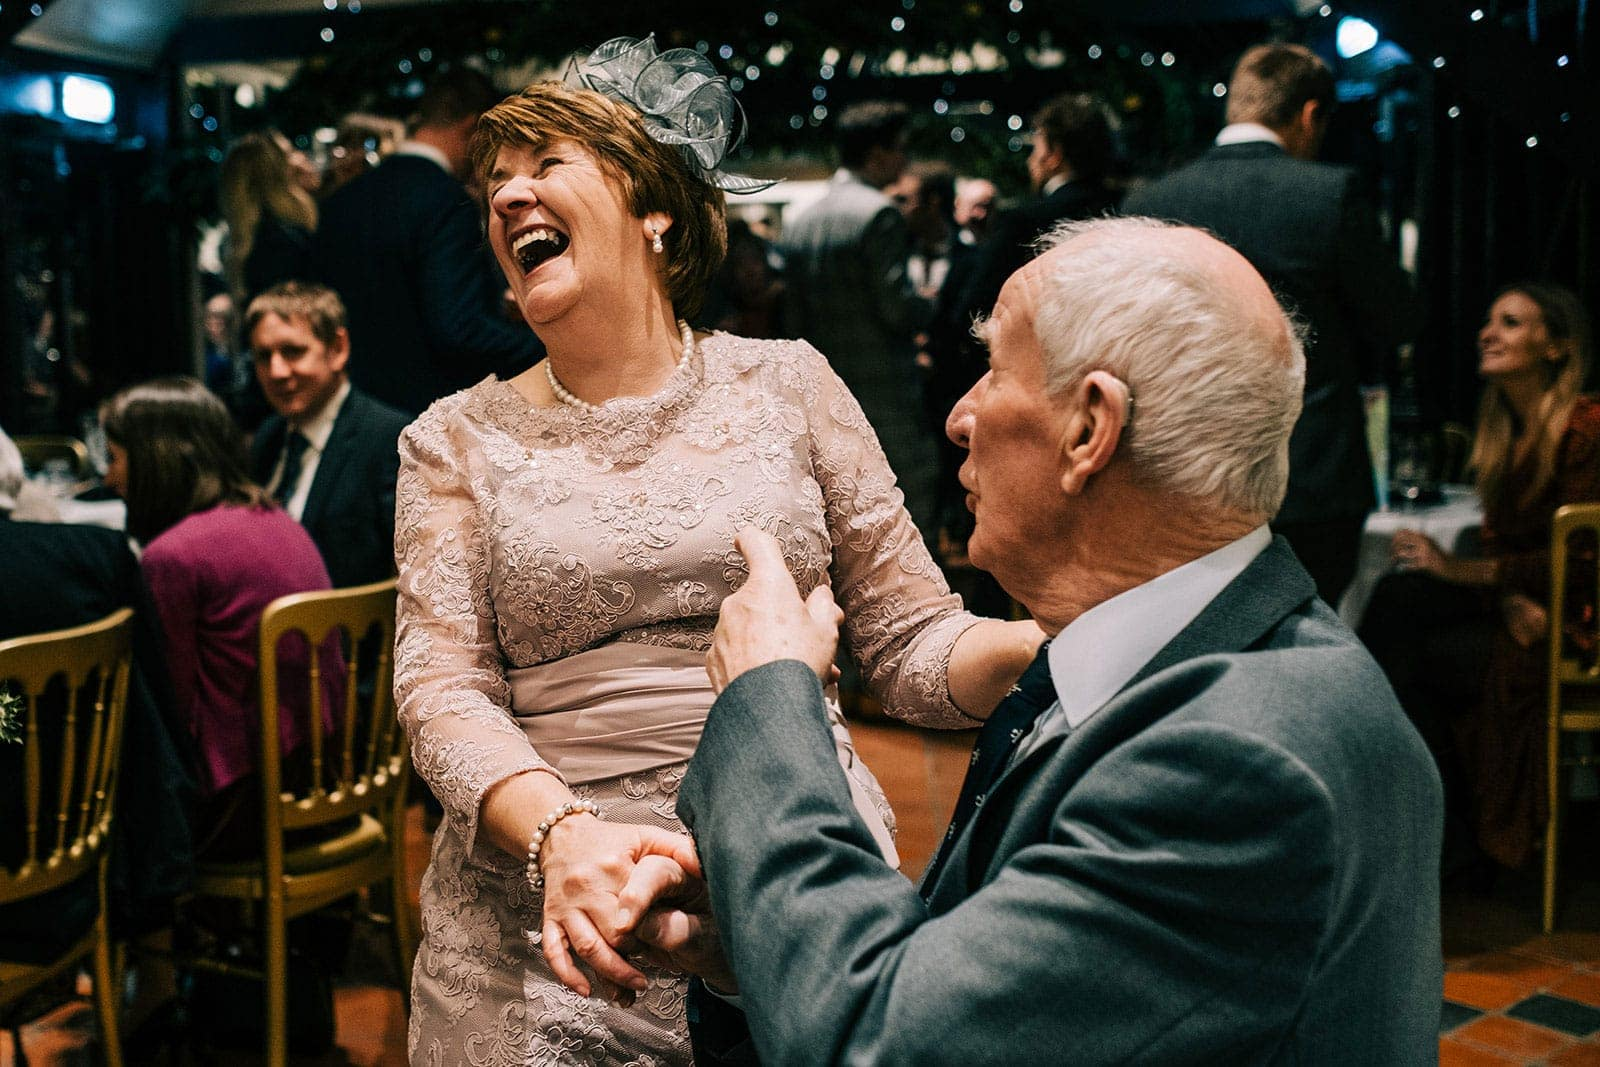 Louise's auntie laughs during the drinks reception